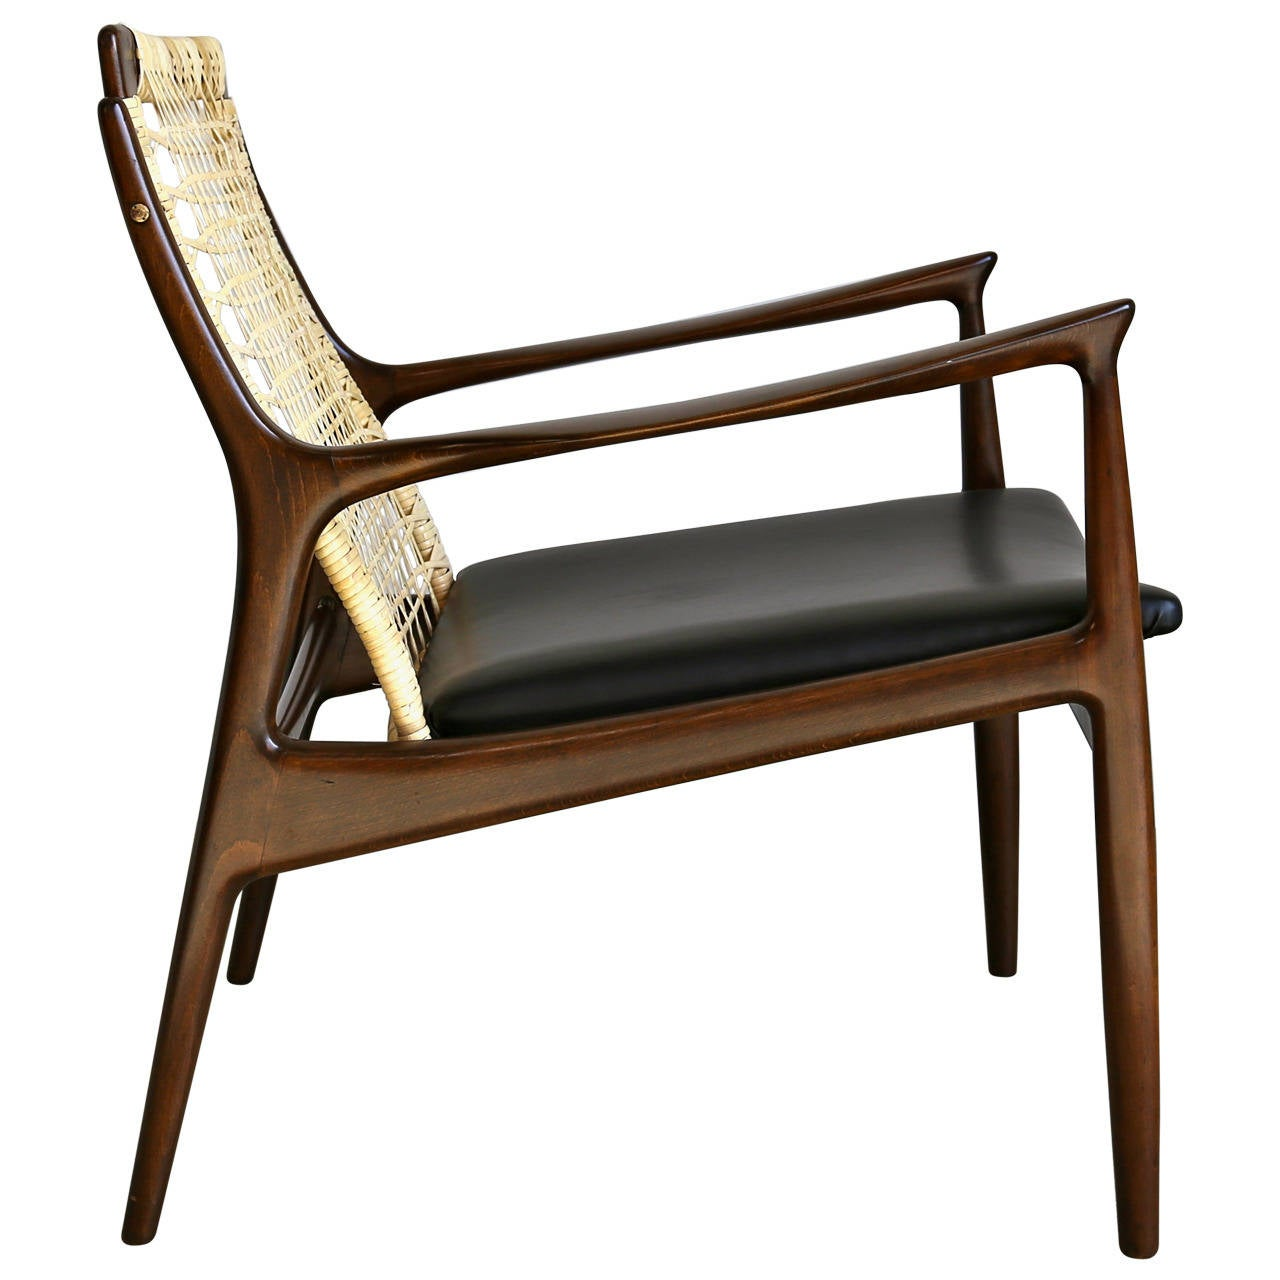 Caned Lounge Chair by Ib Kofod Larsen for Selig of Denmark at 1stdibs